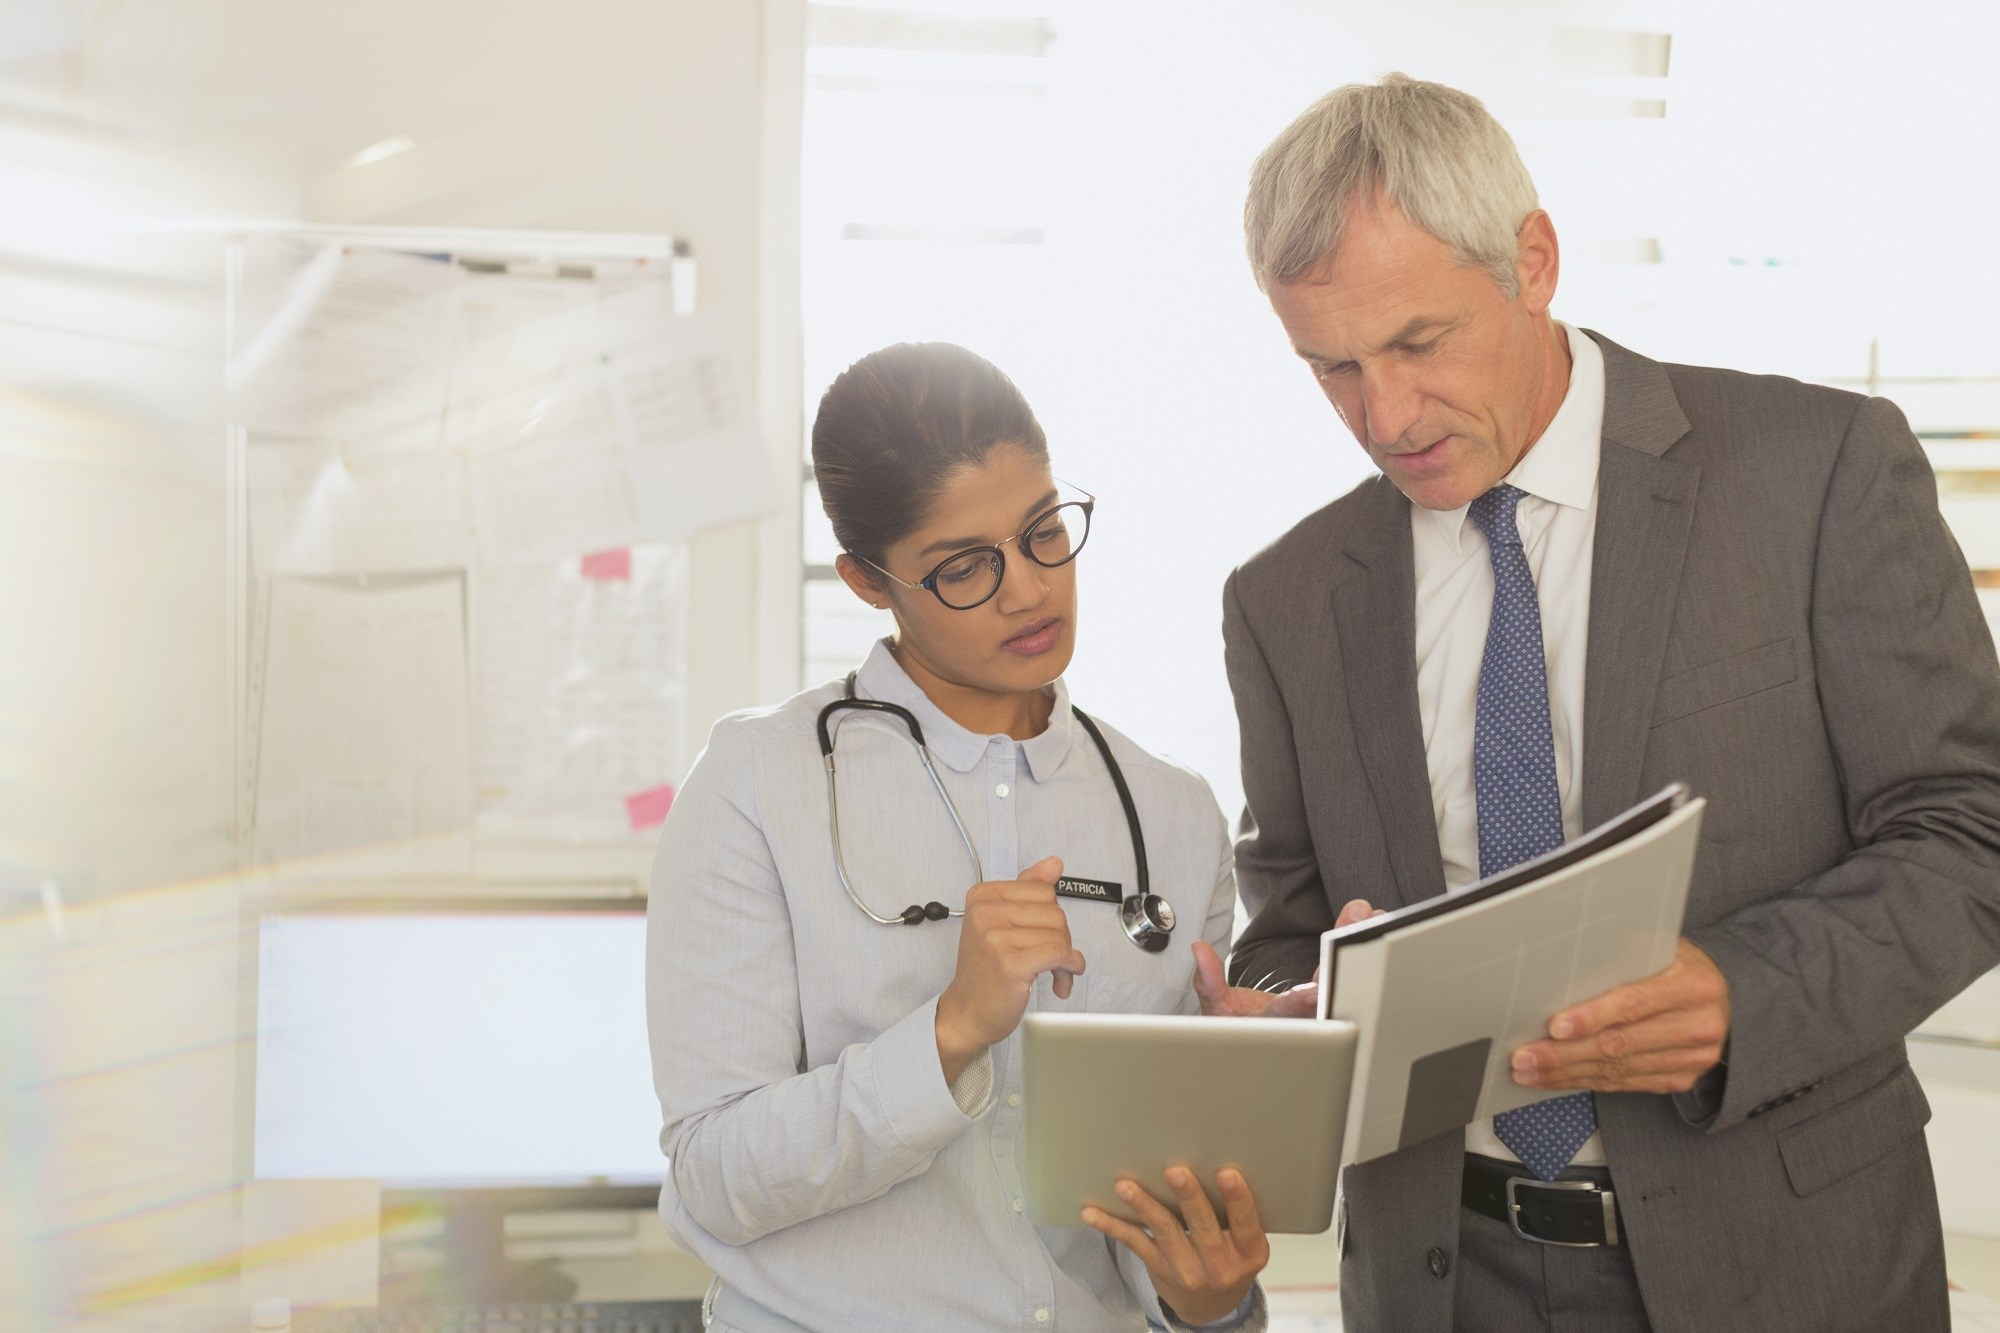 Business Degree Increasingly Useful for Doctors